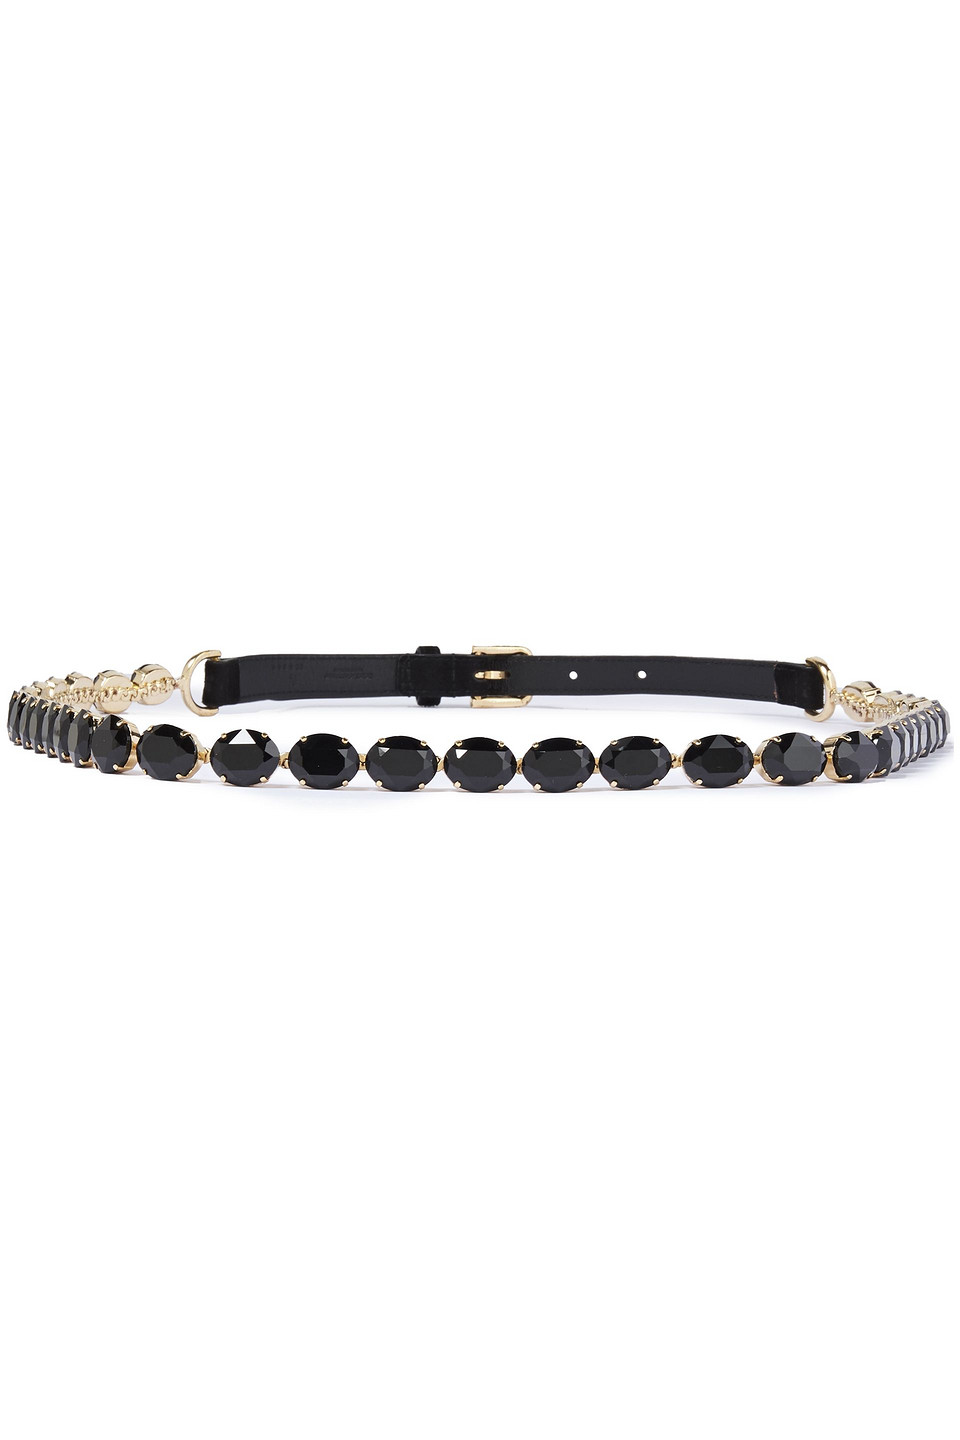 Dolce & Gabbana | Dolce & Gabbana Woman Crystal And Suede Belt Black | Clouty